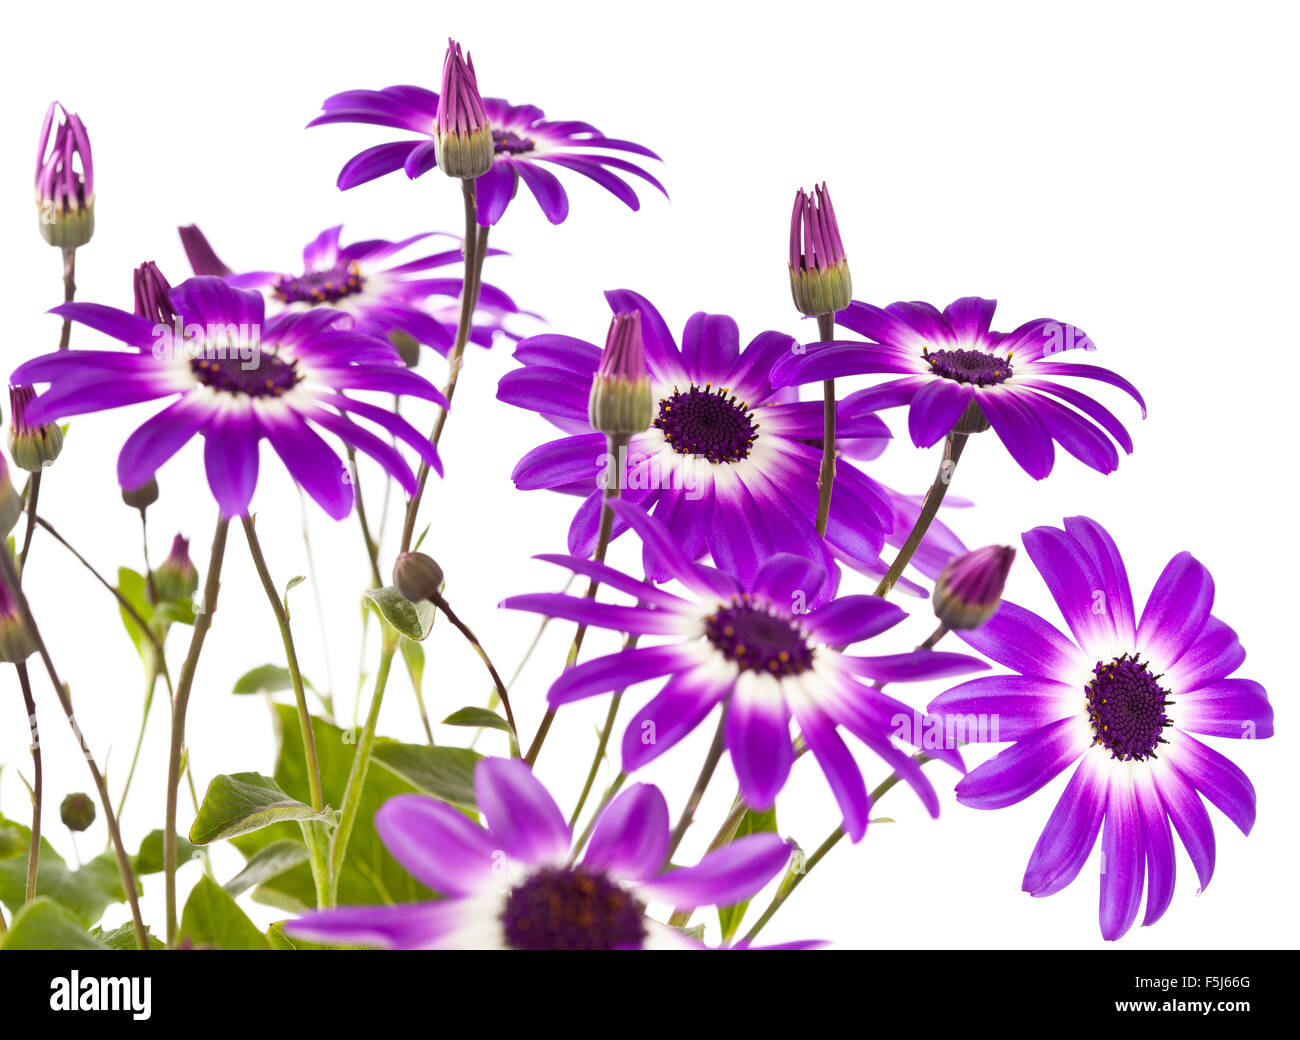 Two tone flowers stock photos two tone flowers stock images alamy purple and blue daisy like flowers stock image izmirmasajfo